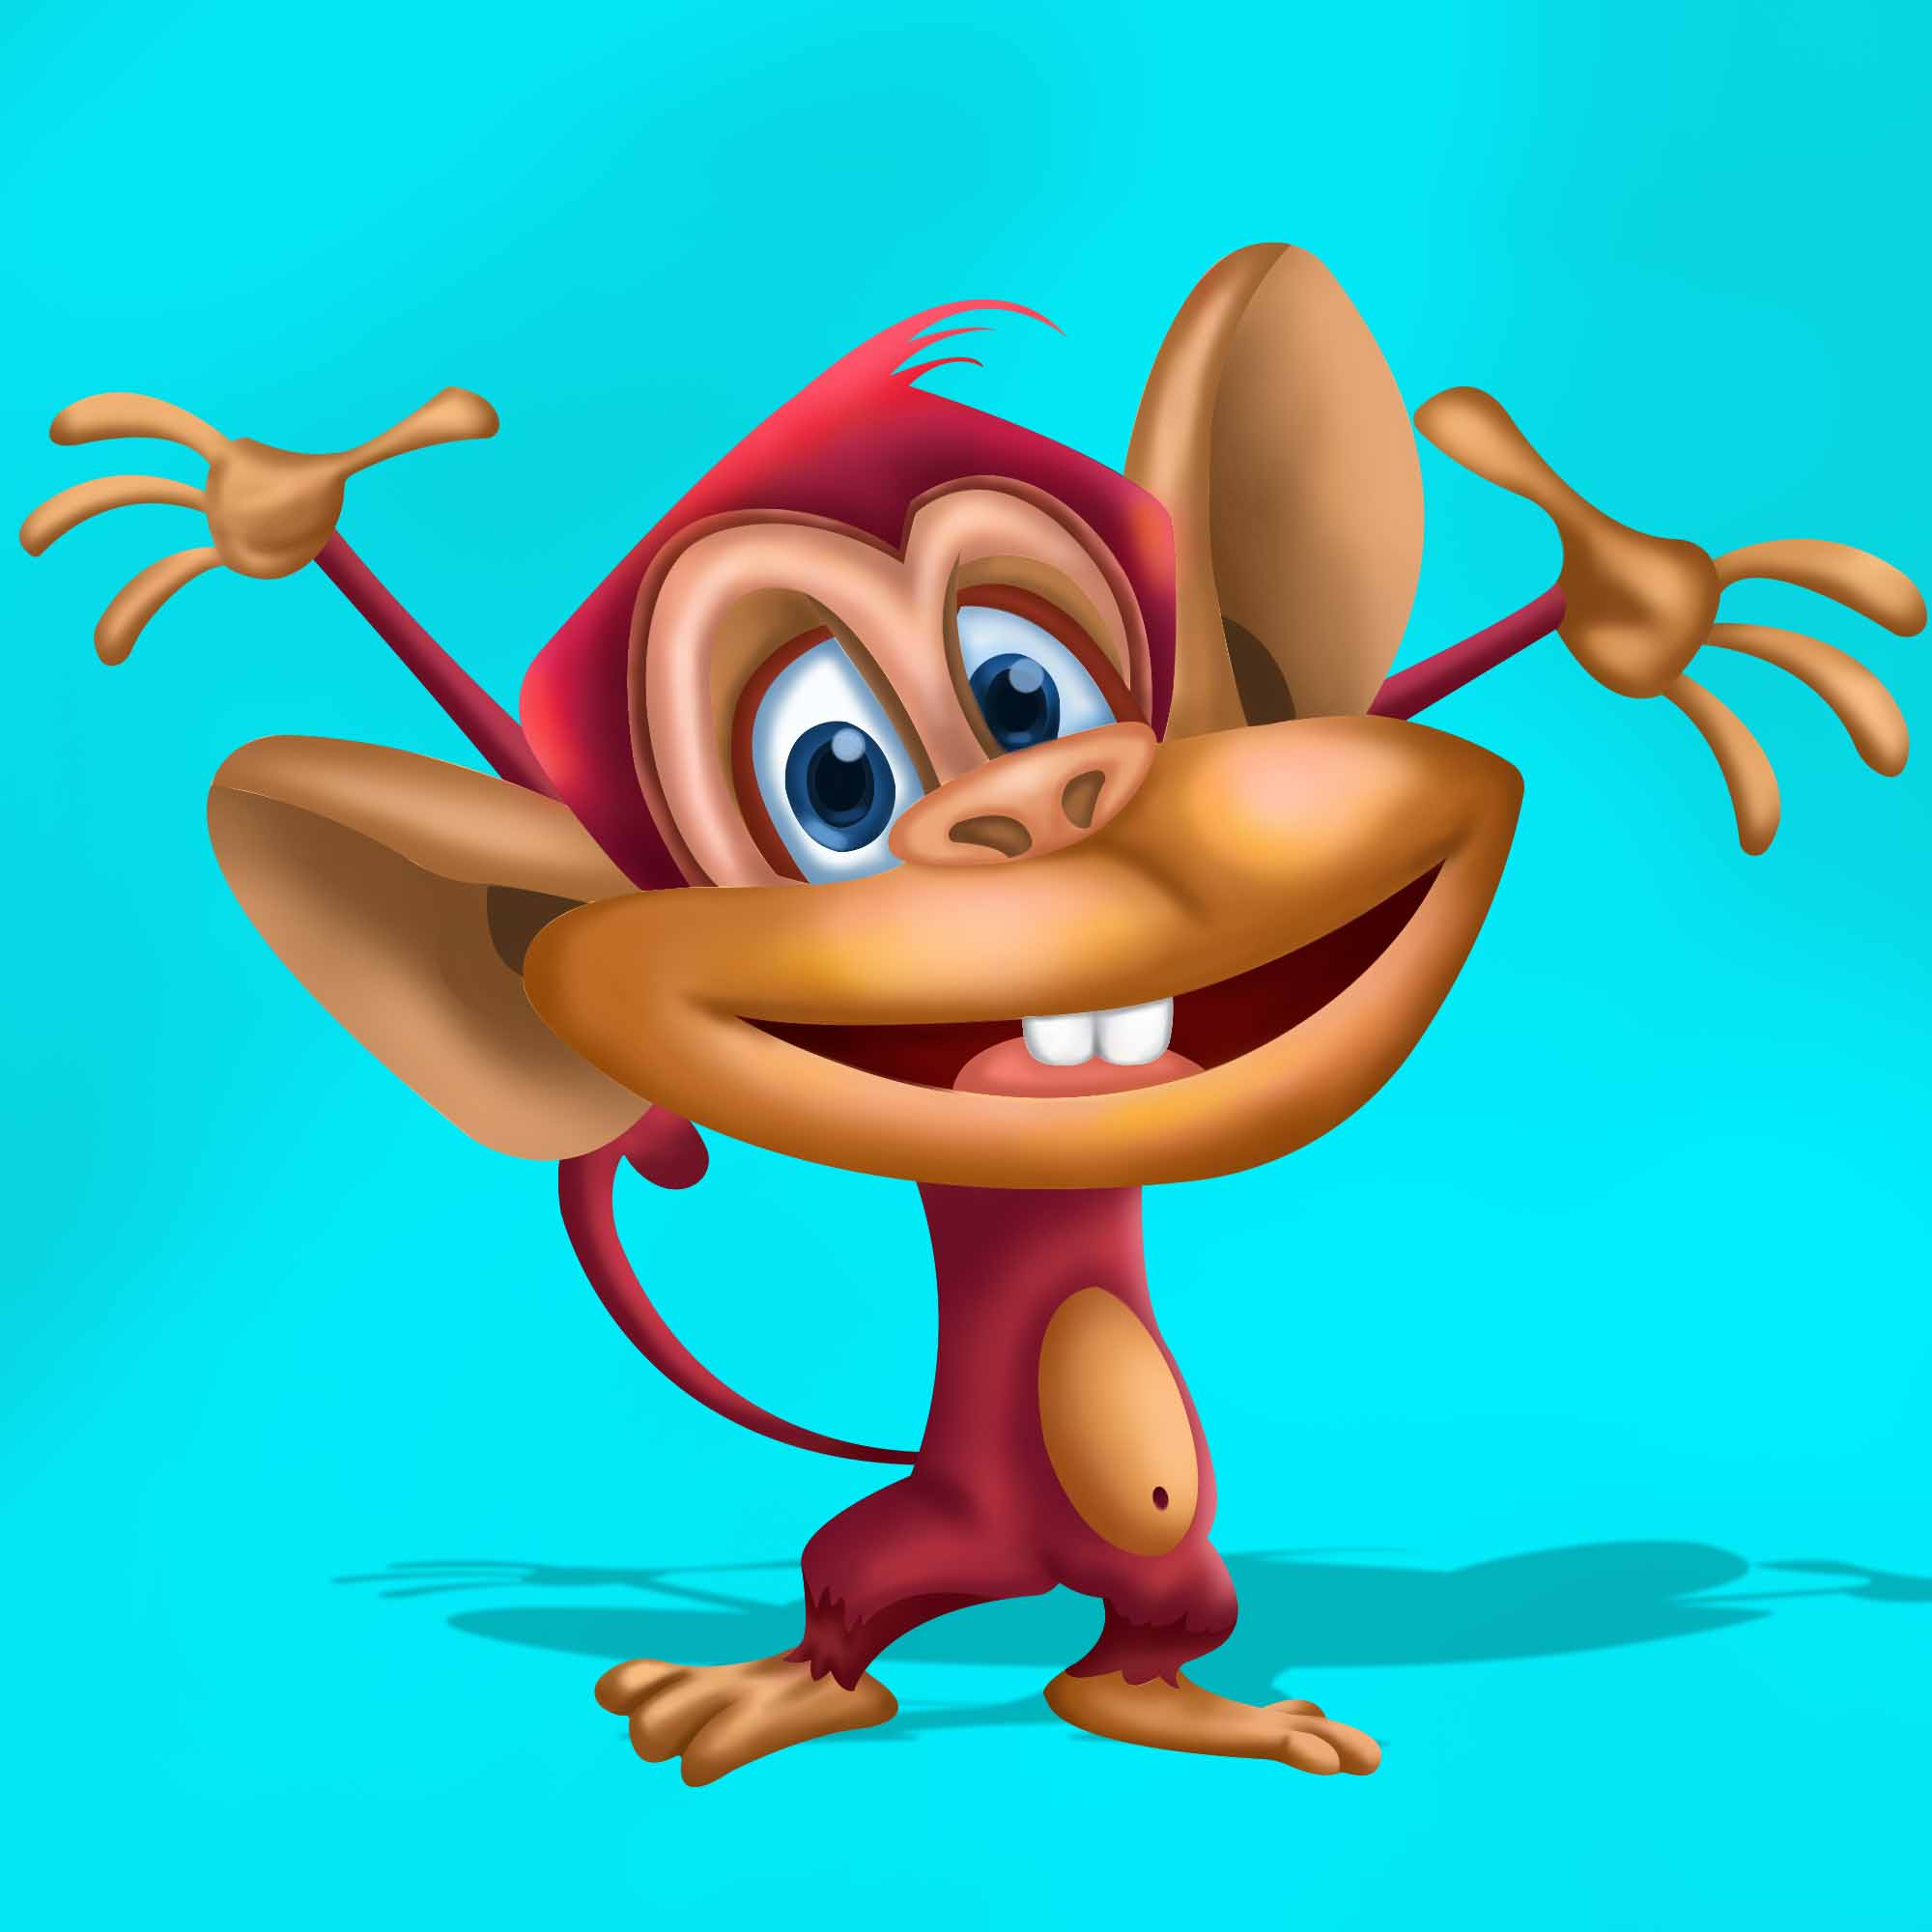 Slot Game character monkey